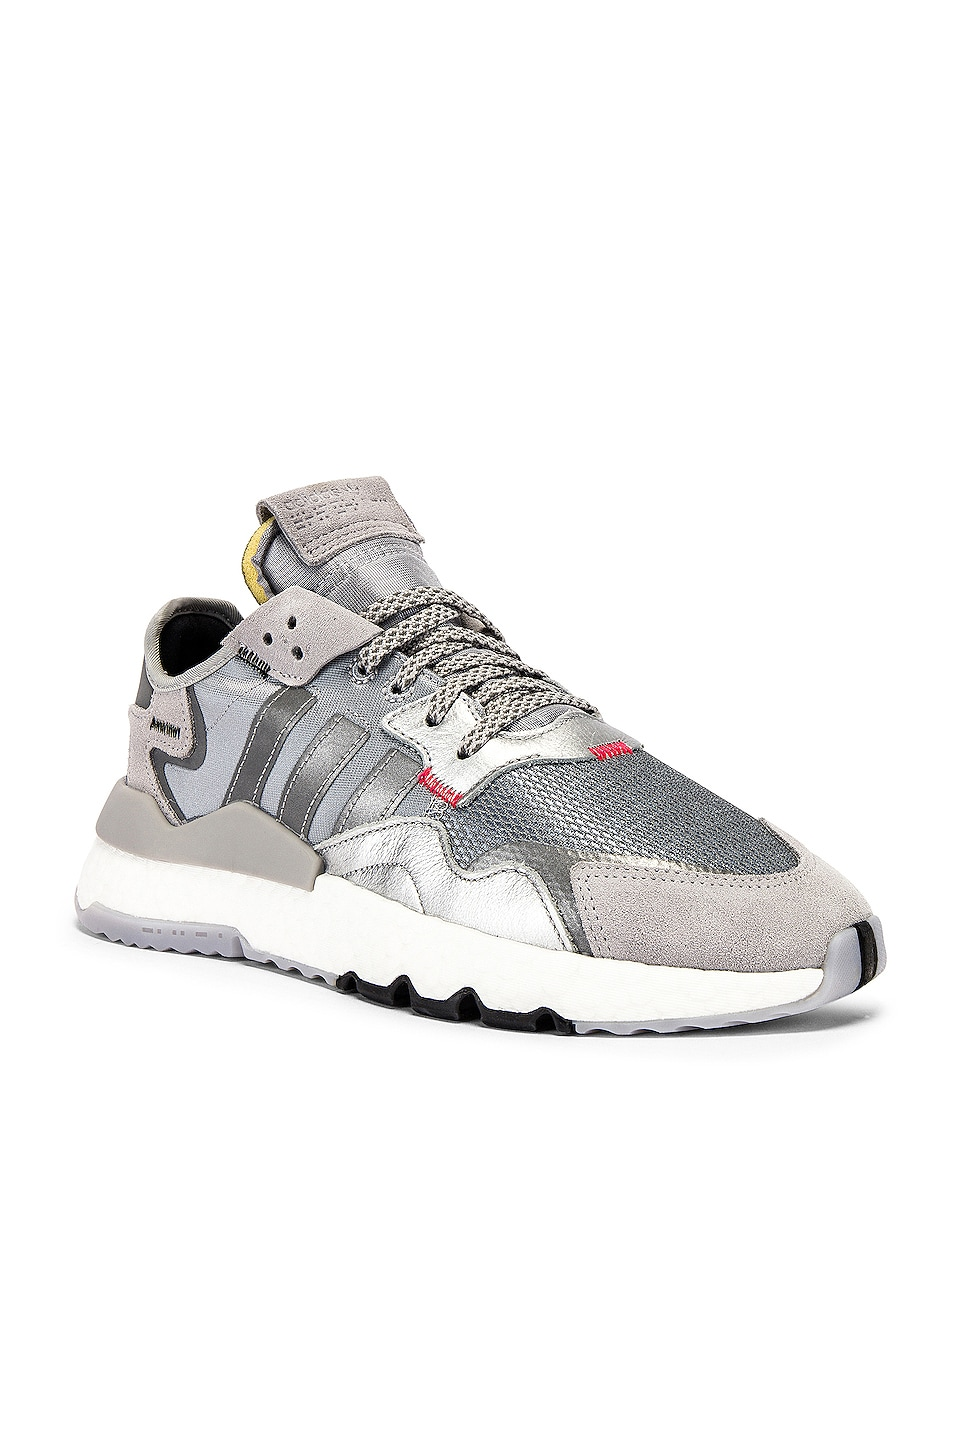 adidas Originals Nite Jogger en Silver Metallic & Light Grey & Black